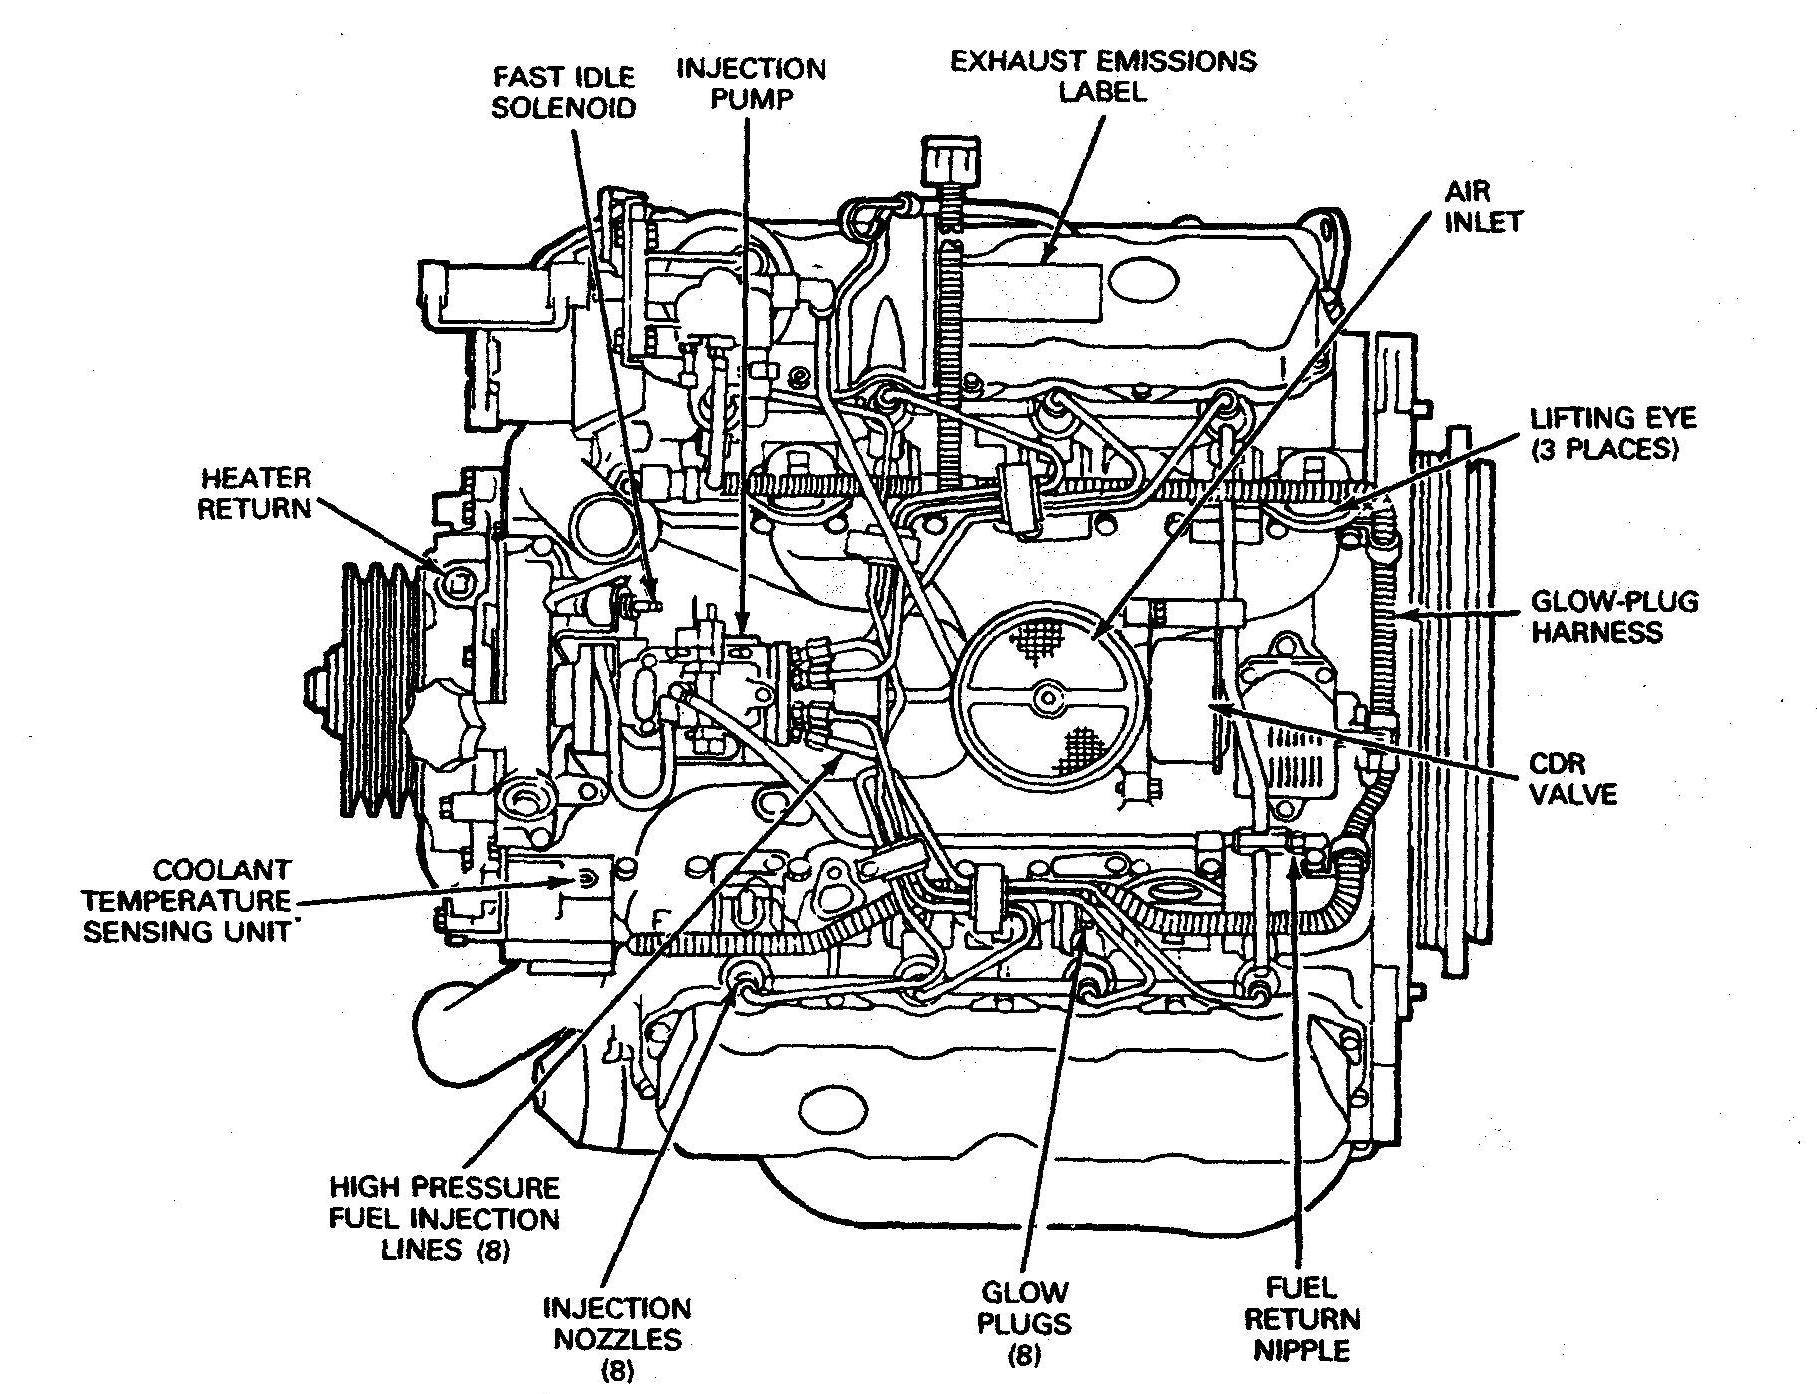 Chevy Impala 3 8 L Engine Diagram in addition Fordsens01A together with Engine and jet drive additionally Gm 3800 Engine Torque Specs as well 7mh0t 1996 Buick Regal 3800 Series Engine It That. on 3800 series 2 v6 engine diagram